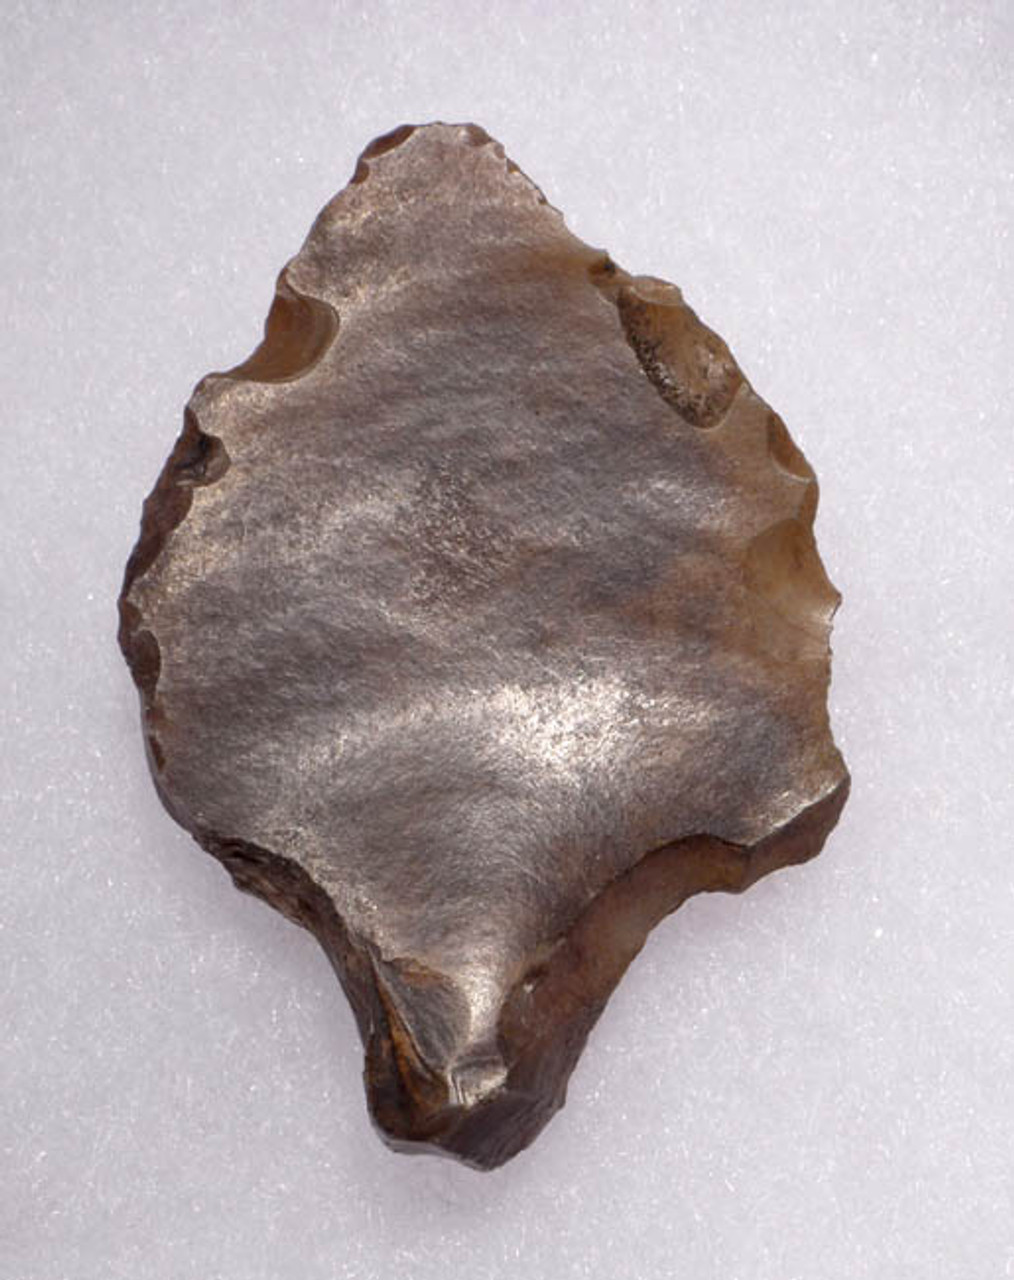 MIDDLE PALEOLITHIC ARROWHEAD